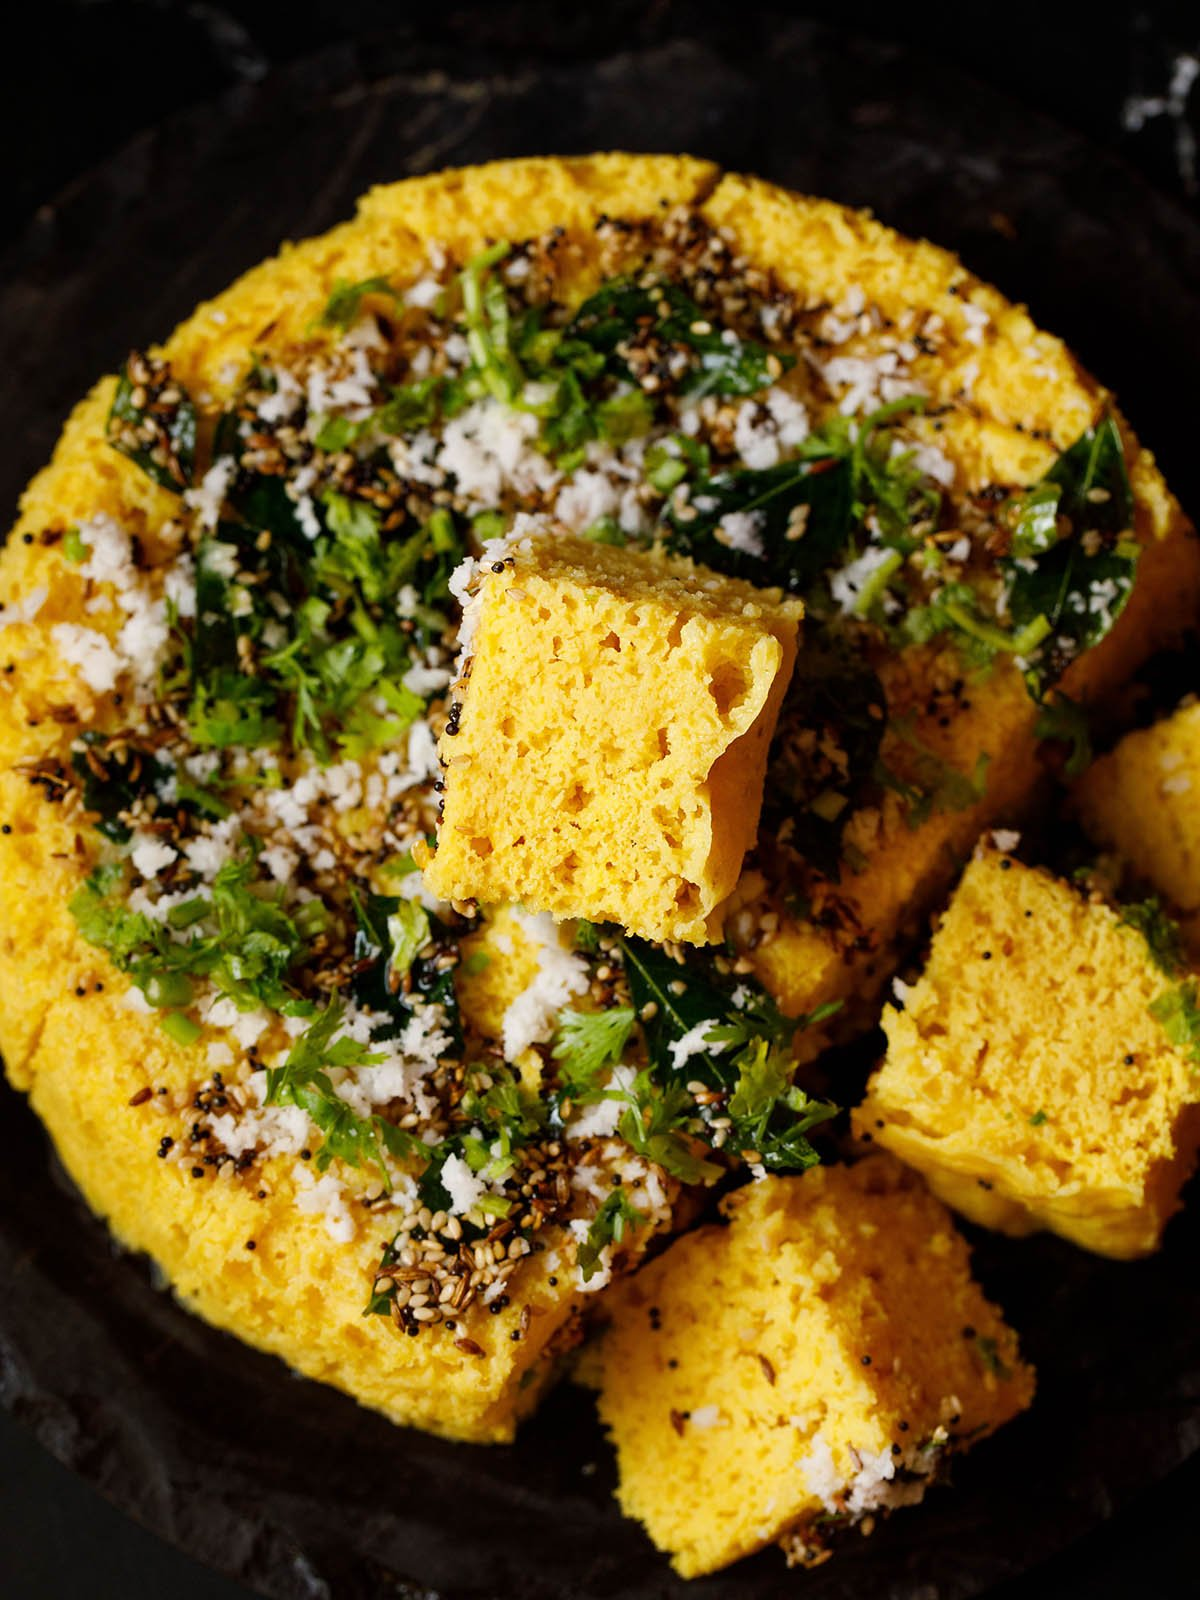 a tender soft block of khaman kept on top the round steamed cake with some khaman cubes at the side on a black granite tray